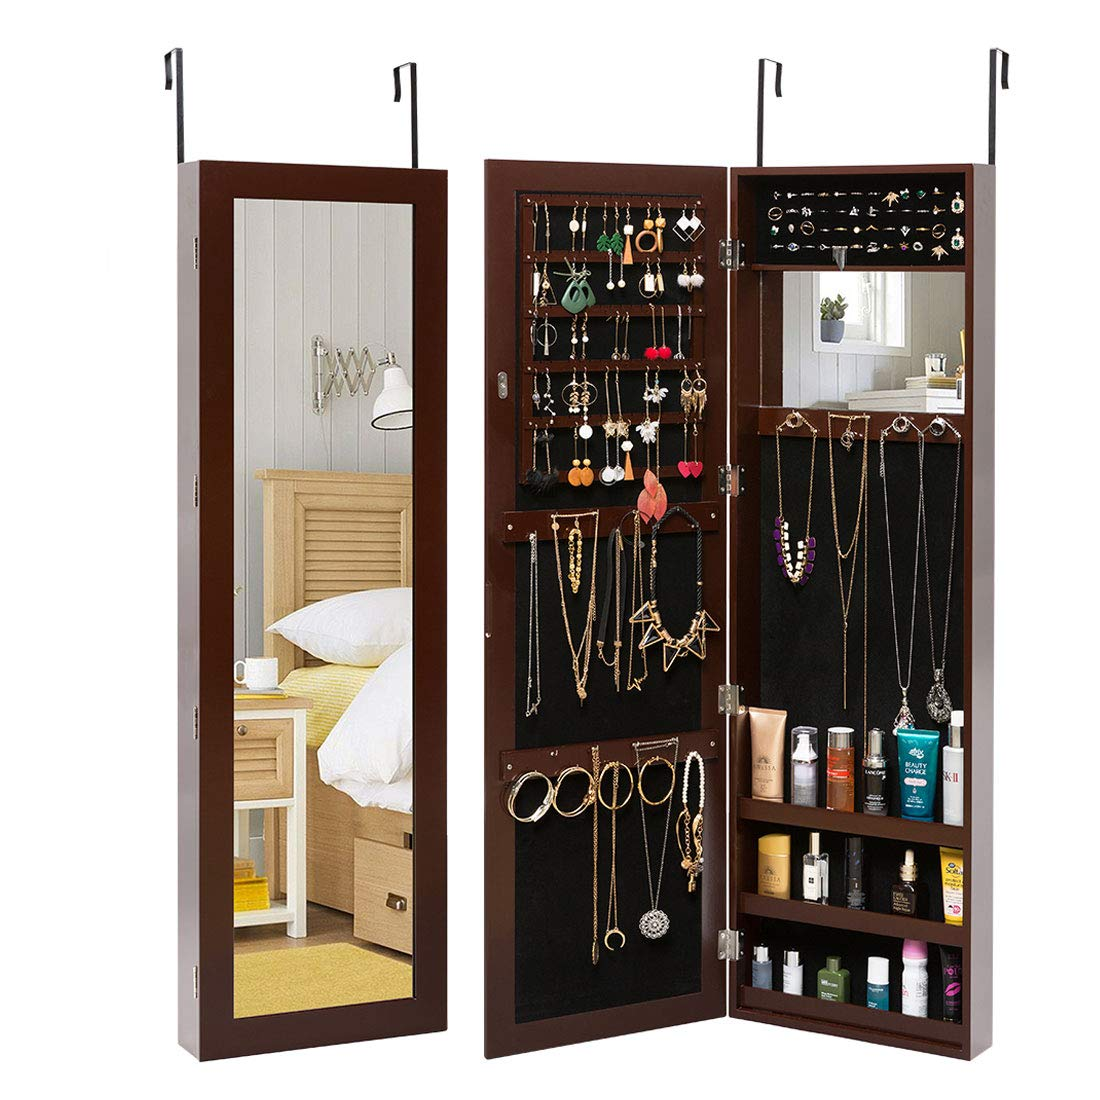 Marble Field Jewelry Cabinet Armoire Mirrored Cabinet with Full-Length Mirror Wall Door Mounted Hanging Jewelry Armoire Organizer for Necklaces Rings Brown